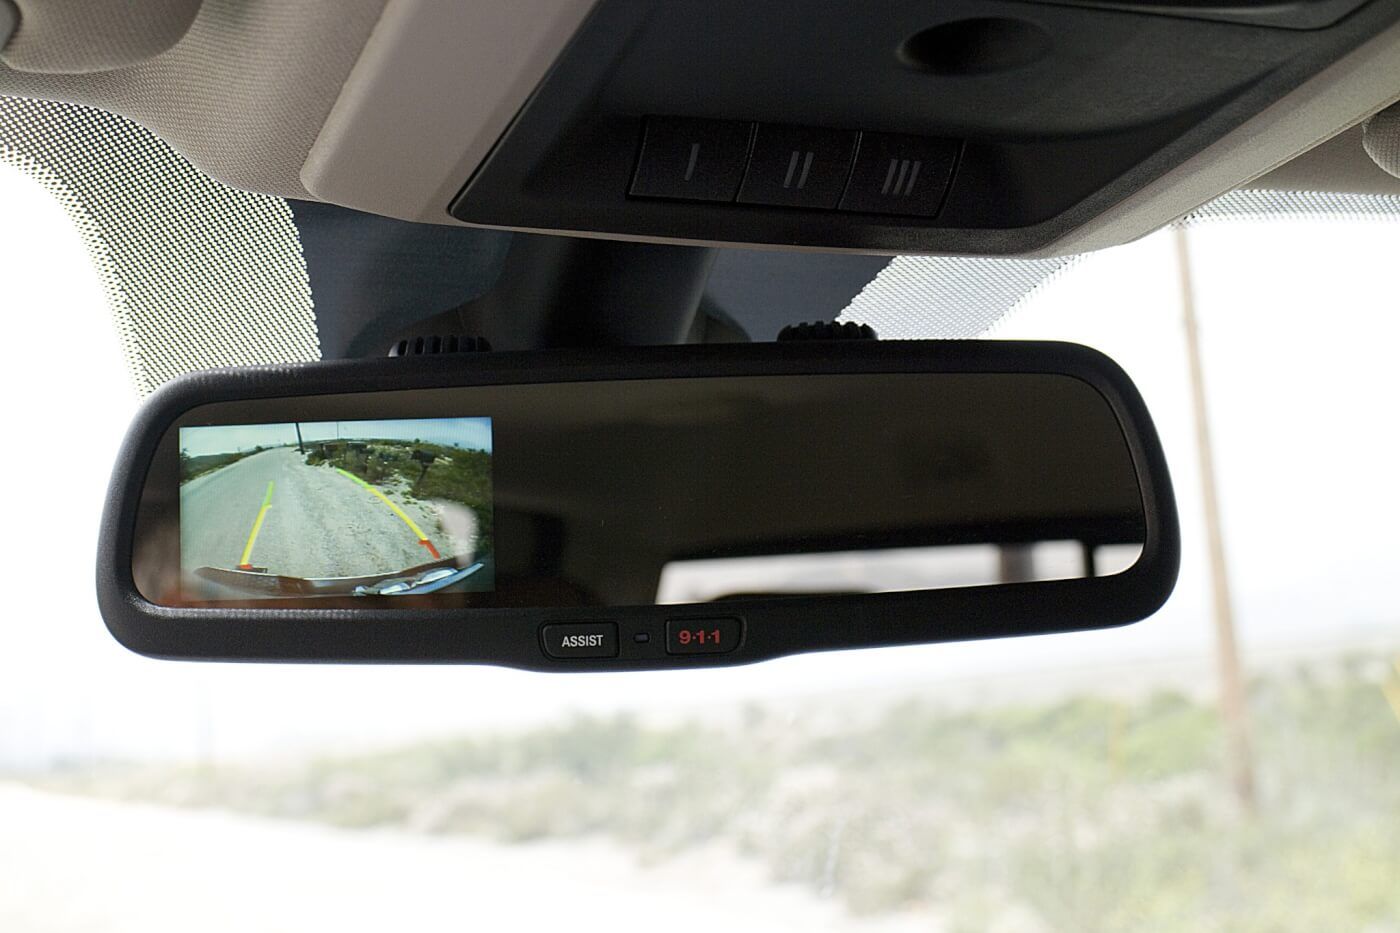 11. Our test truck featured a backup camera that displays in the rear view mirror. While not a large a screen as a dash display, it ensures that you are looking at the backup camera and the mirror at the same time. This makes backing up a little safer, but don't forget to use your side mirrors too.